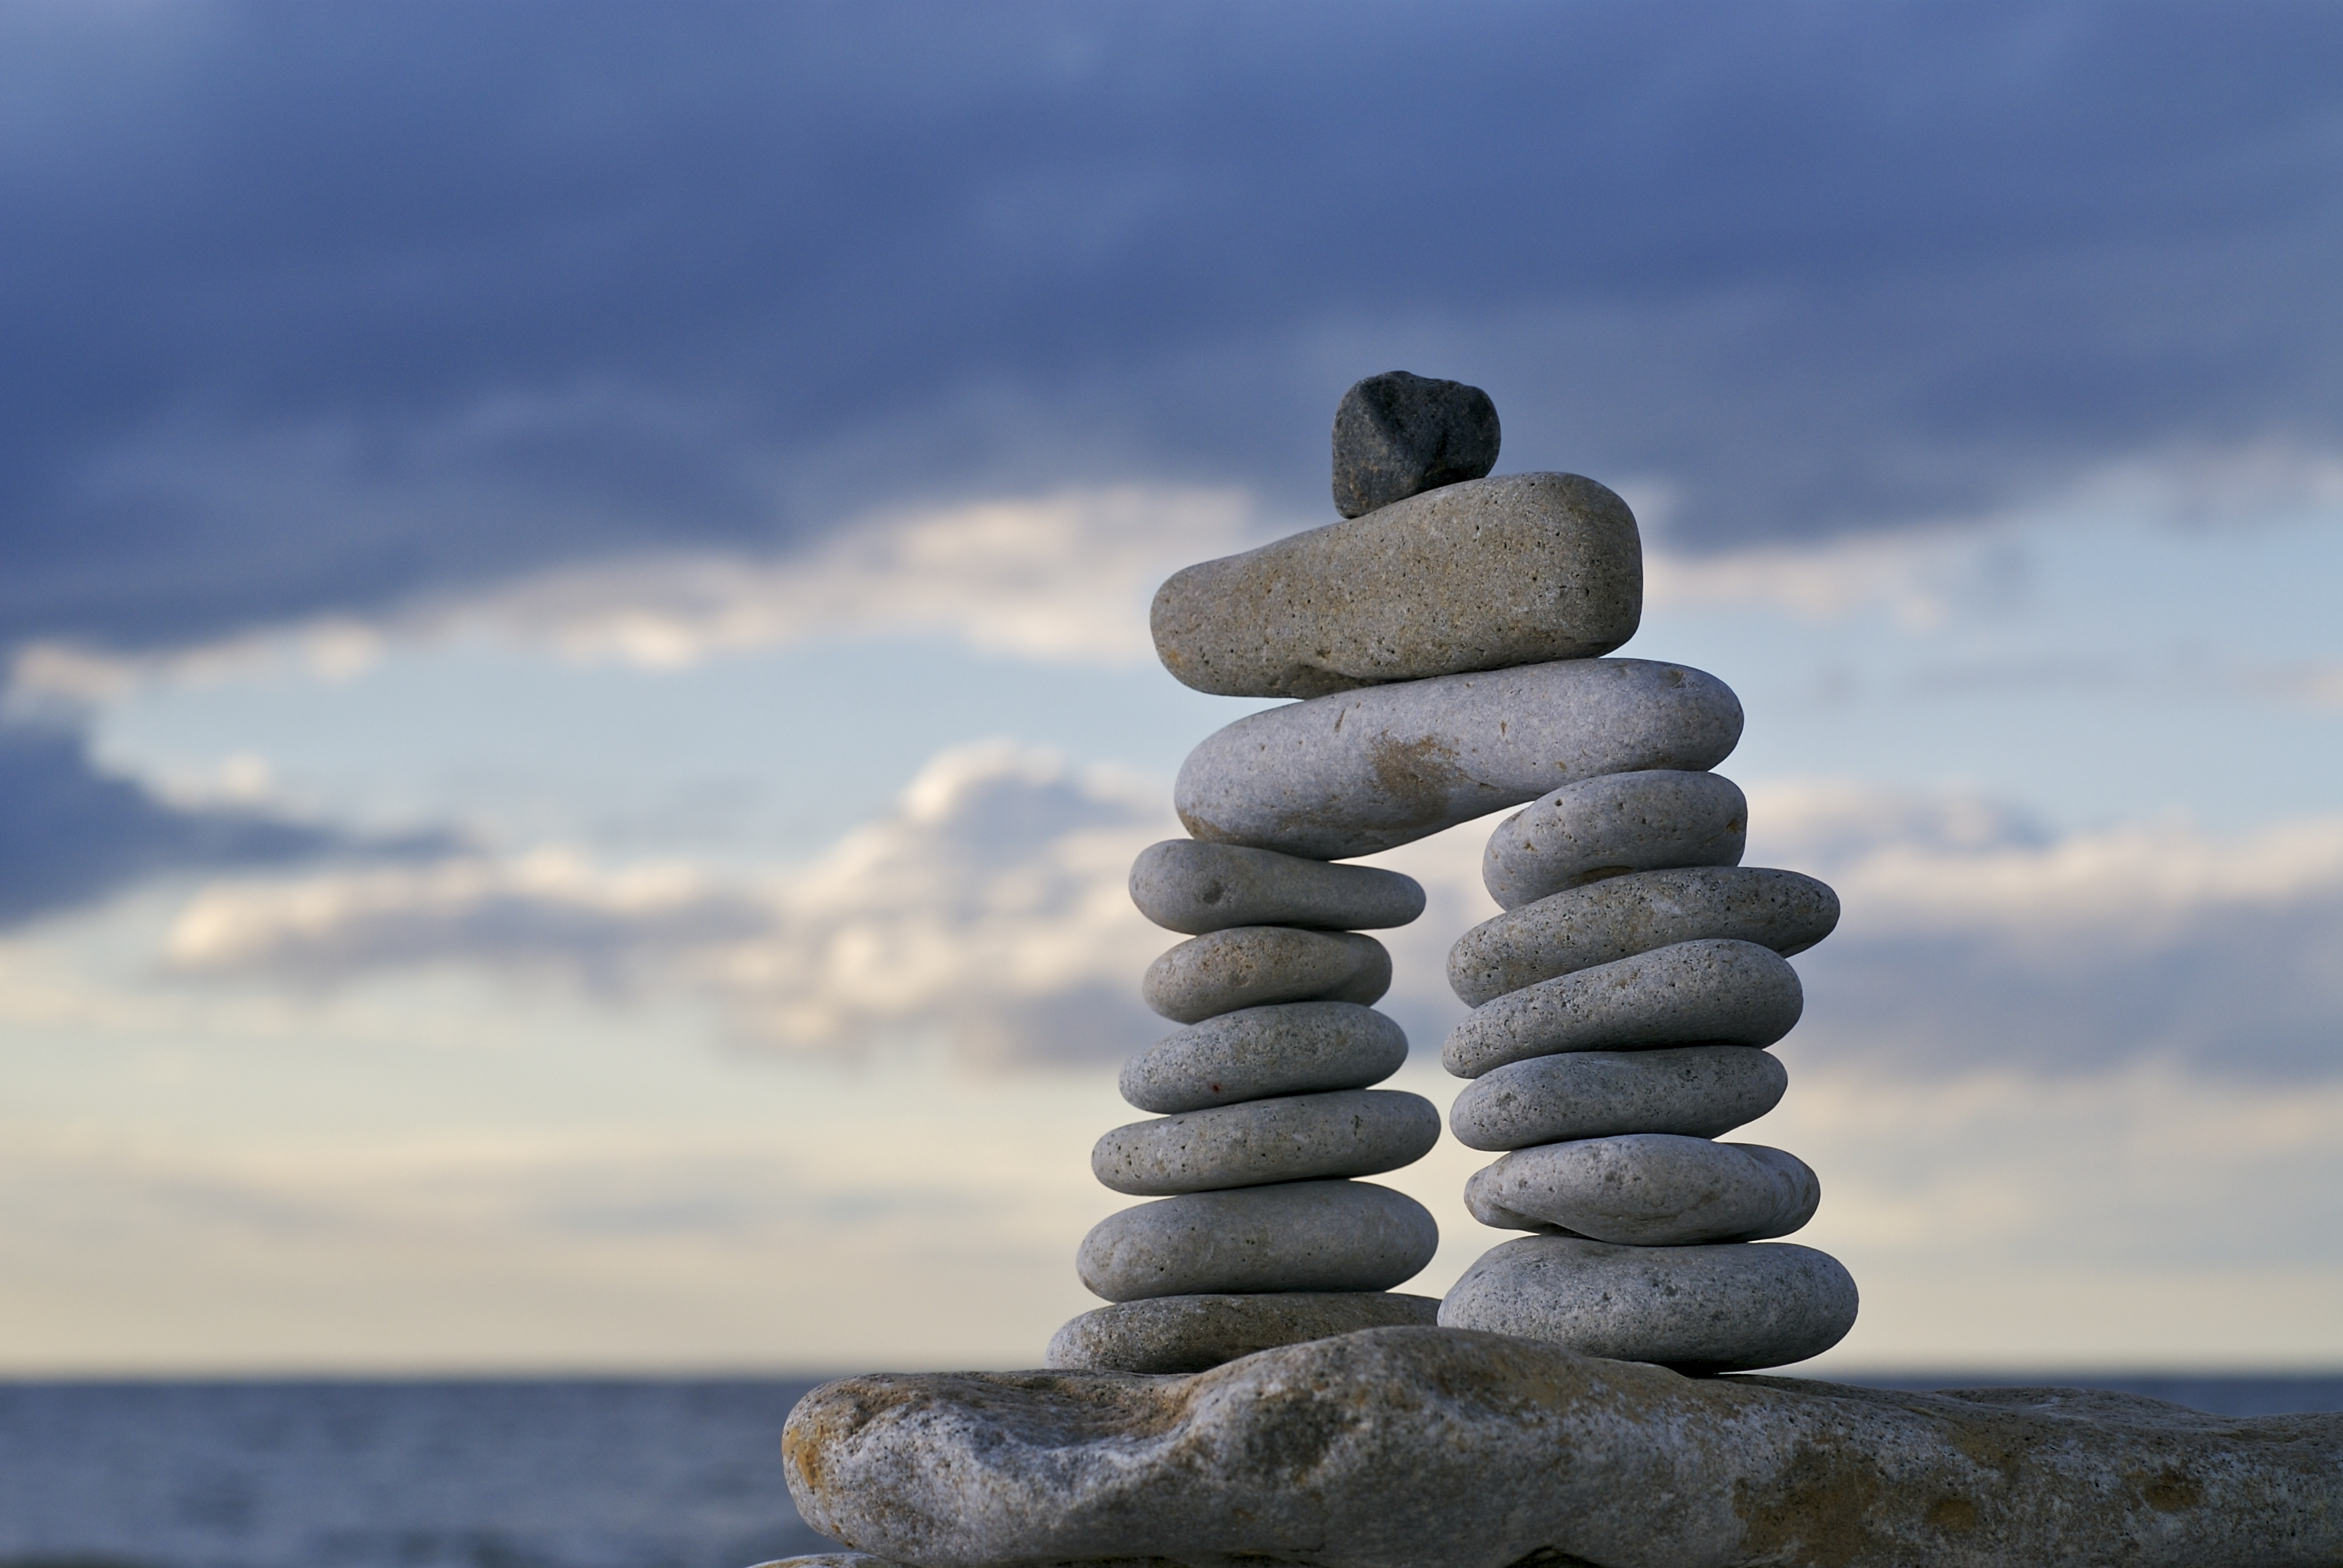 Staying grounded -- rock tower